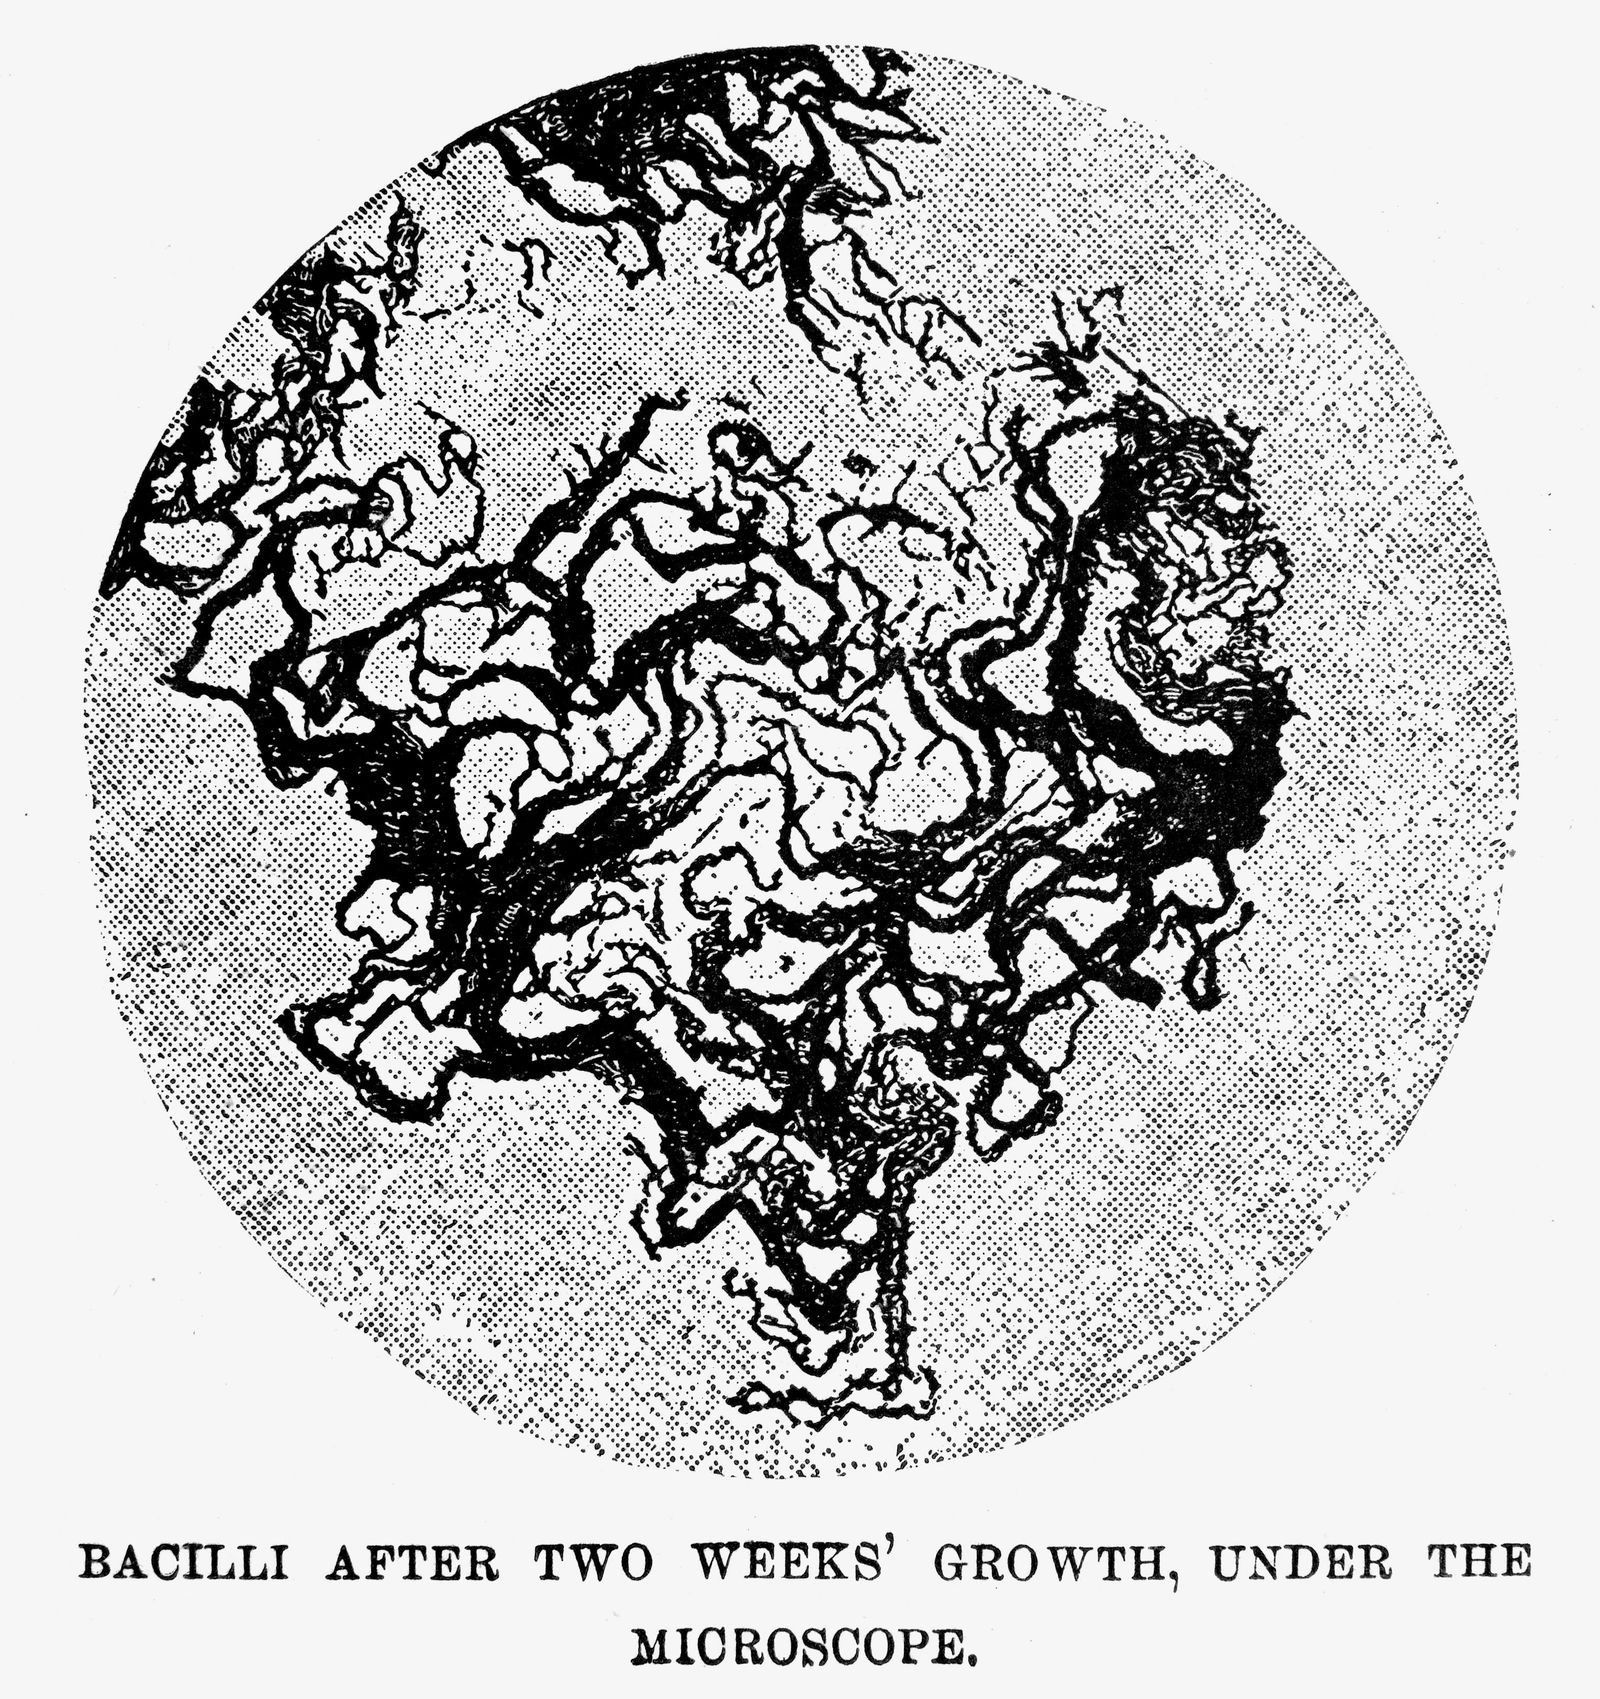 ROBERT KOCH: BACILLI. Engraving after a drawing by Robert Koch of tuberculosis bacilli, after two weeks growth under a culture, as seen under the microscope.